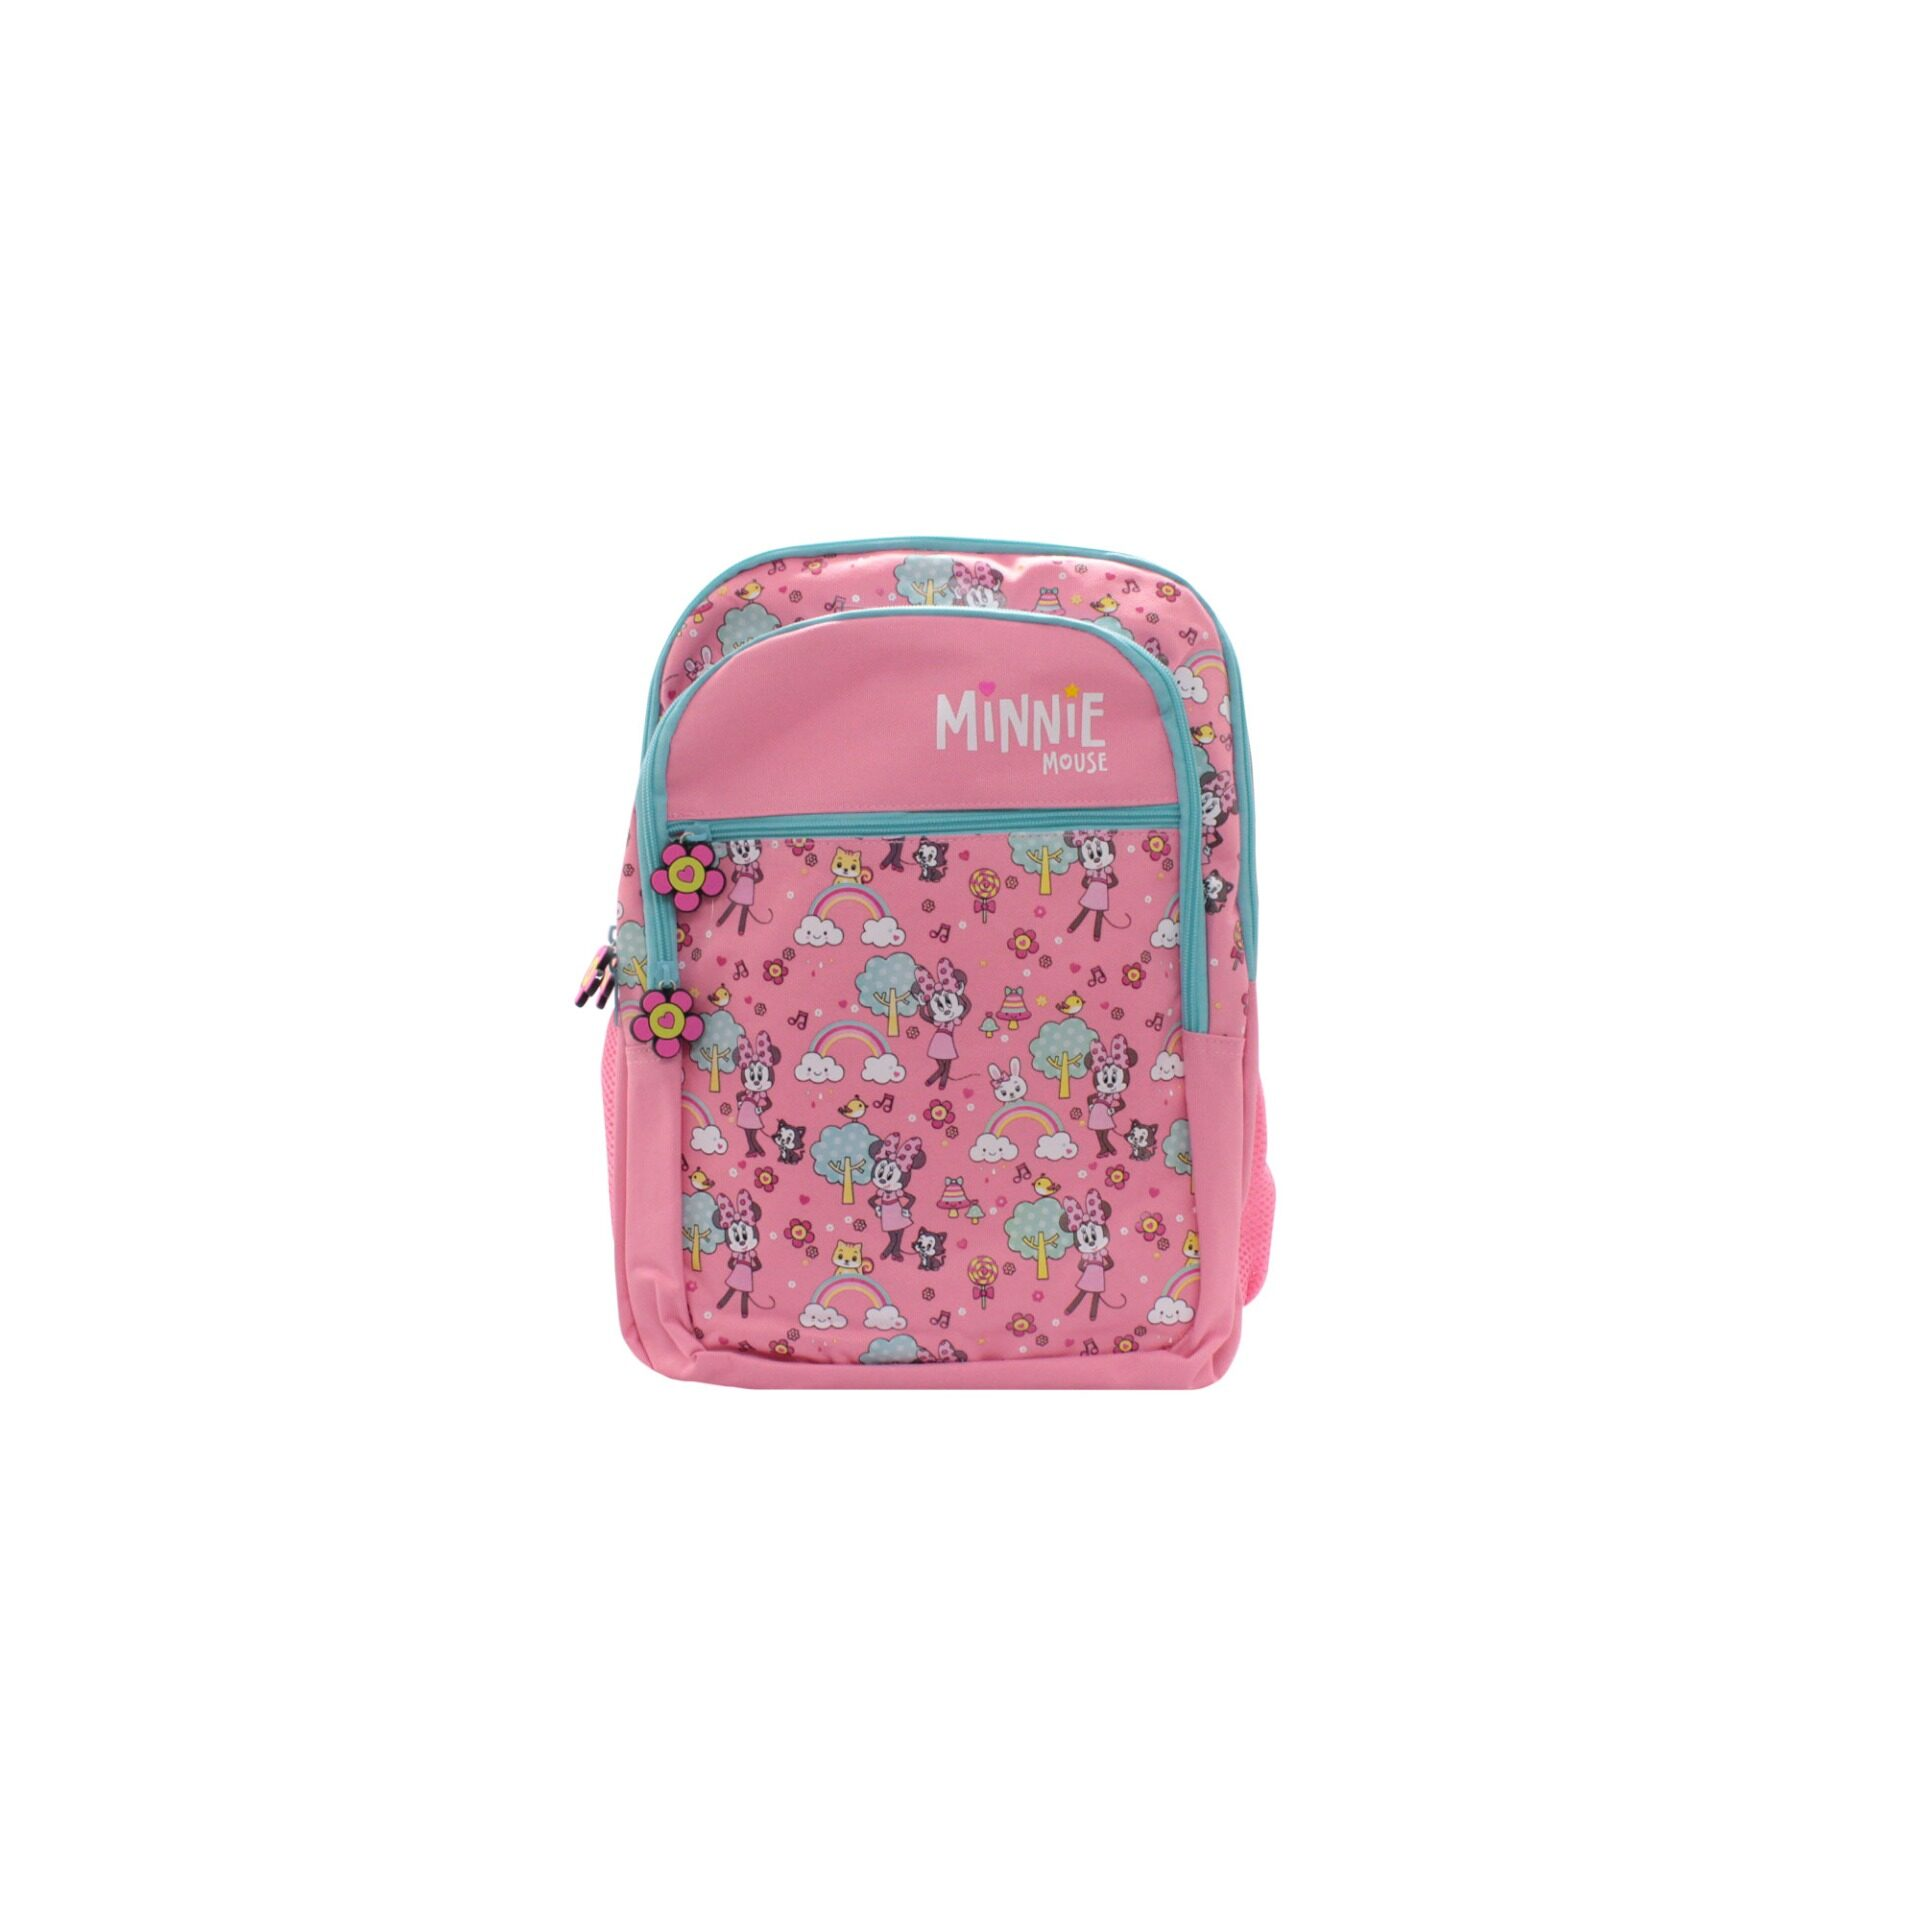 Disney Minnie Mouse Rainbows & Candies With Front Zipper Pouch Kids Girls School Bag (Pink) Age 7 Years & Above